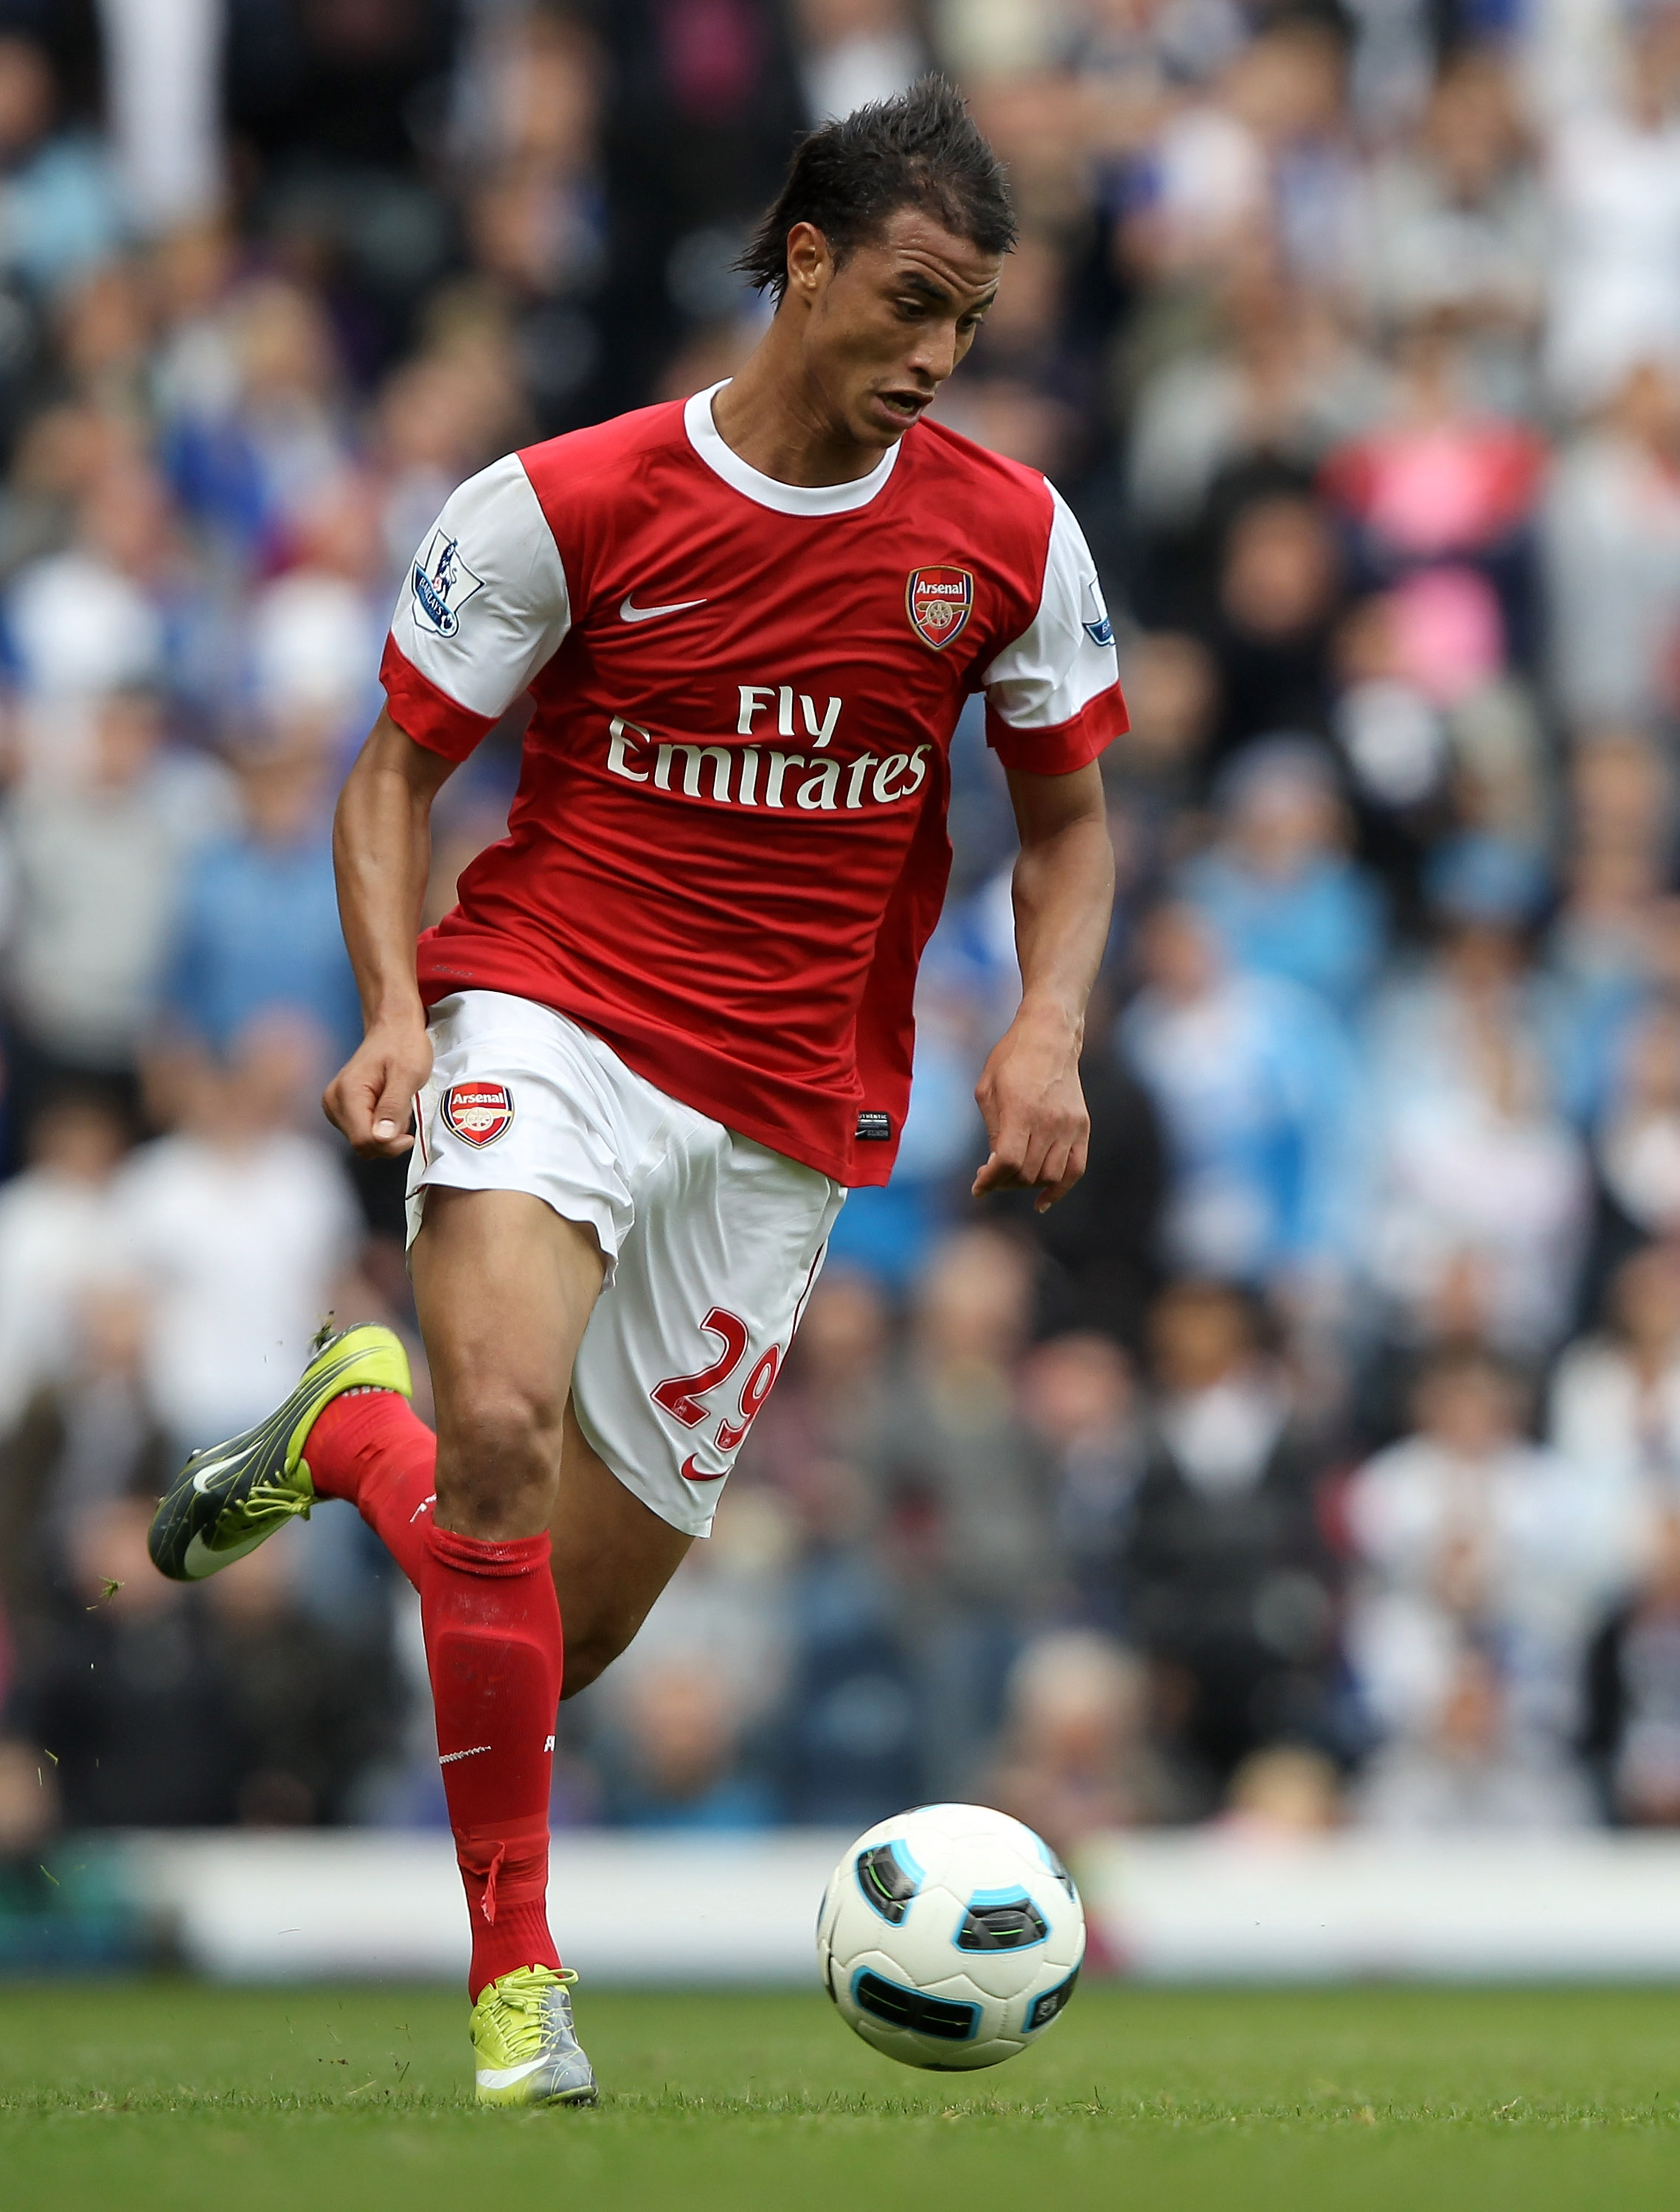 BLACKBURN, ENGLAND - AUGUST 28:  Maroune Chamakh of Arsenal in action during the Barclays Premier League match between Blackburn Rovers and Arsenal at Ewood Park on August 28, 2010 in Blackburn, England.  (Photo by Clive Brunskill/Getty Images)